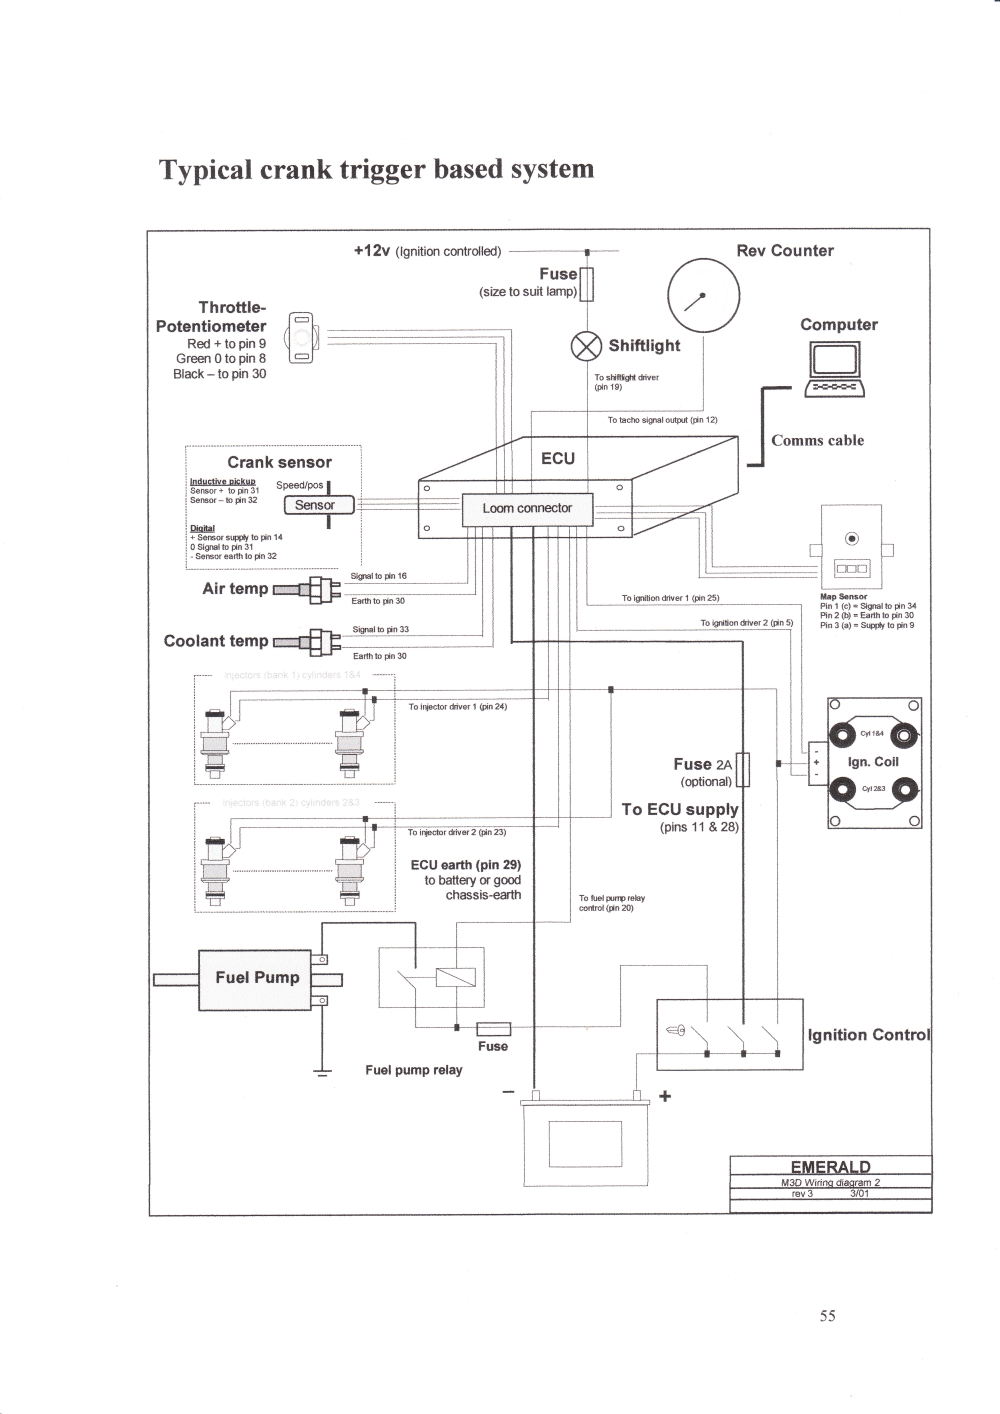 201203022025639669ECU wiring emerald k6 wiring diagram electrical wiring diagrams \u2022 wiring Residential Electrical Wiring Diagrams at readyjetset.co